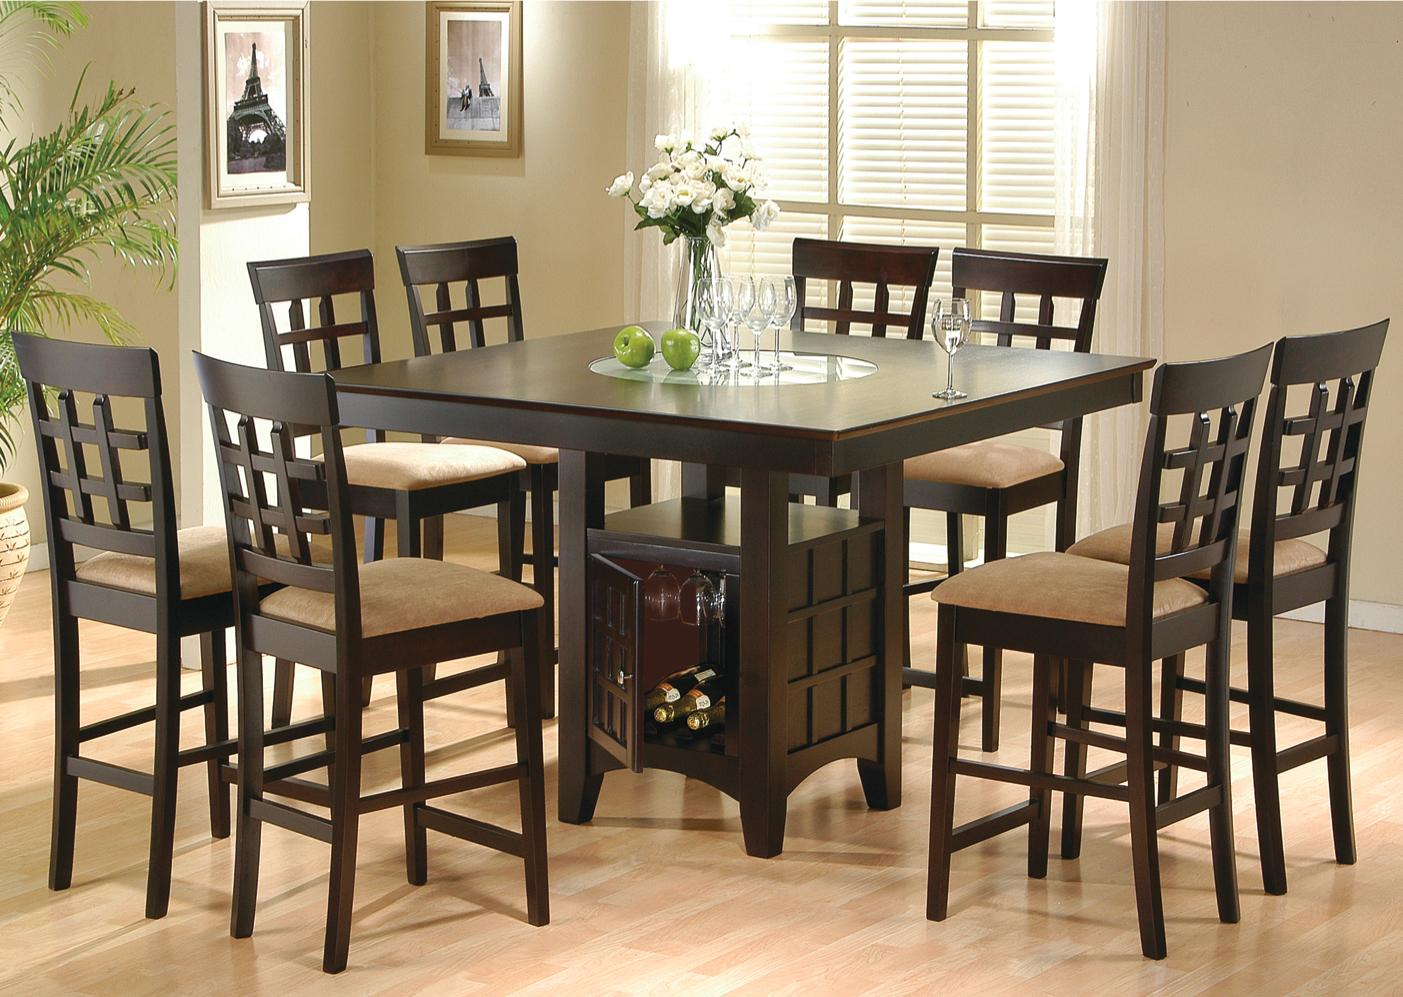 Coaster Mix & Match 9 Piece Counter Height Dining Set | Northeast ...